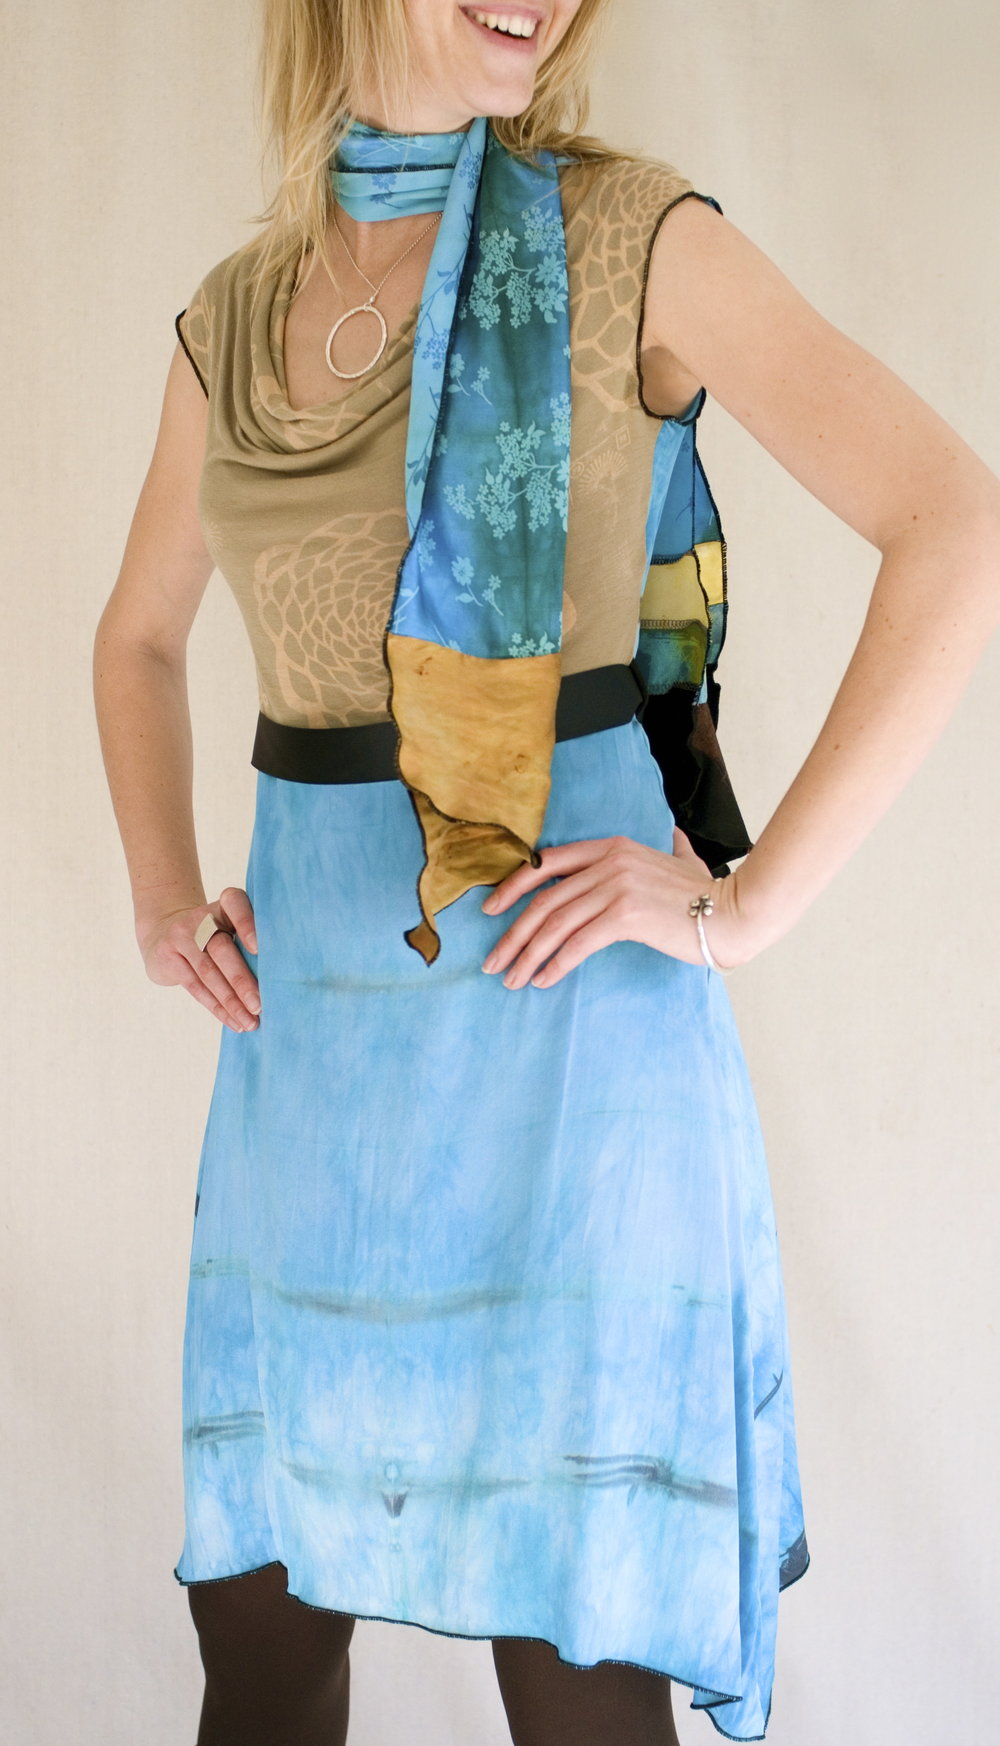 Prism Dress & Collage Scarf